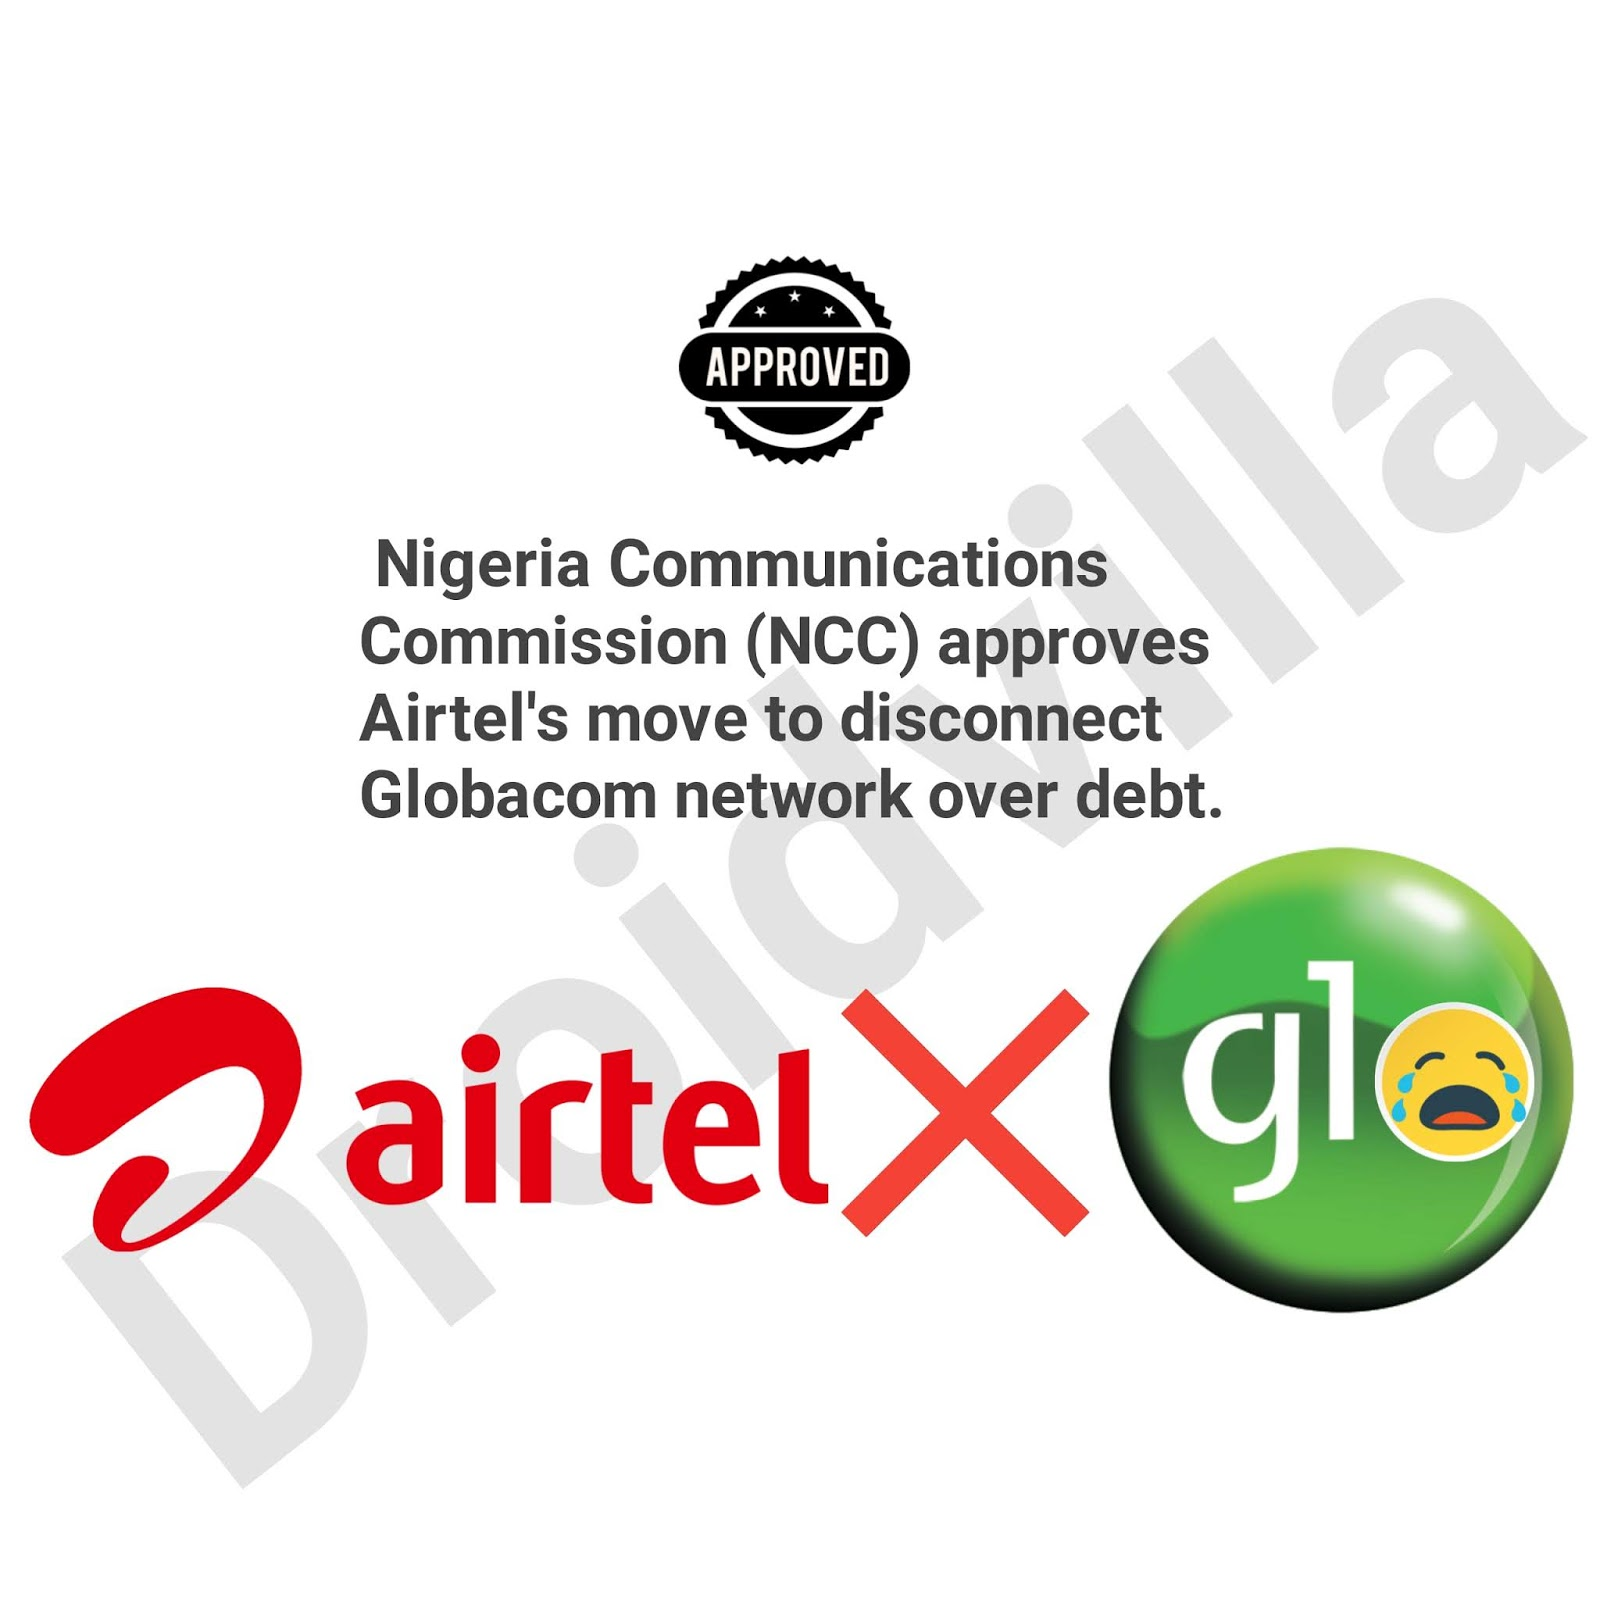 Airtel Disconnection of Globalcom network to take effect from October 28